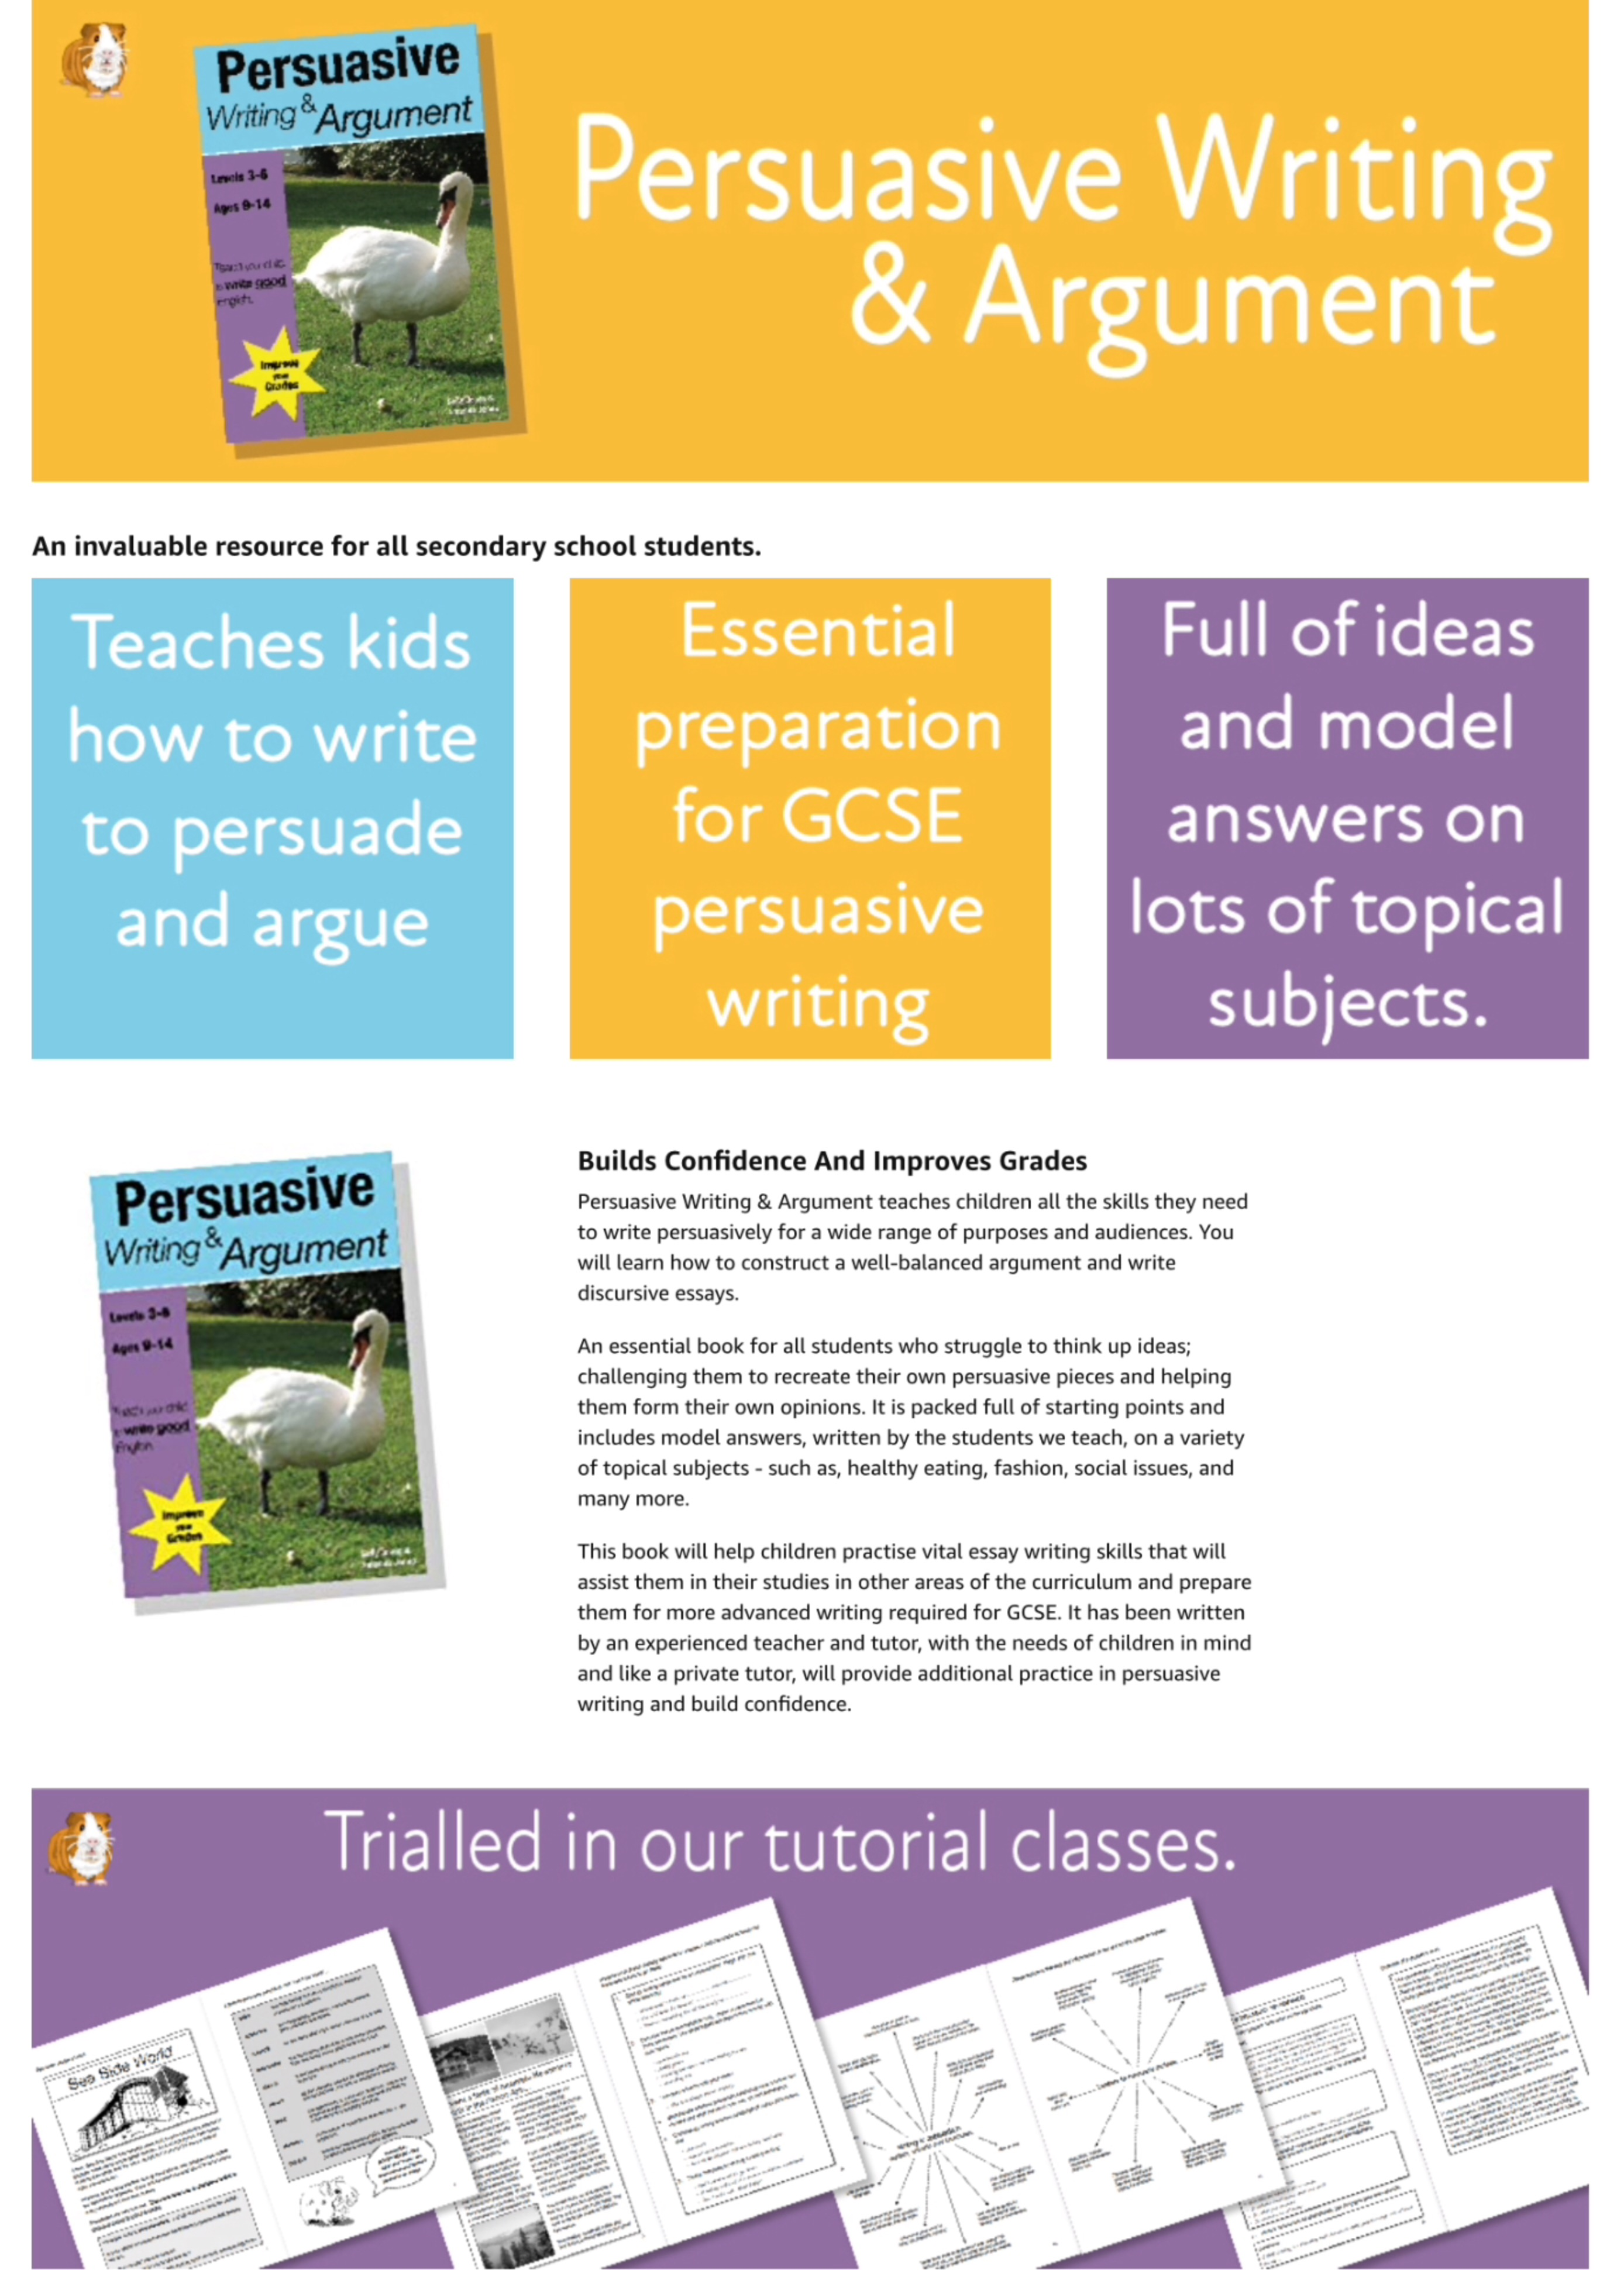 Learning Persuasive Writing And Argument (9-14 years) Digital Download